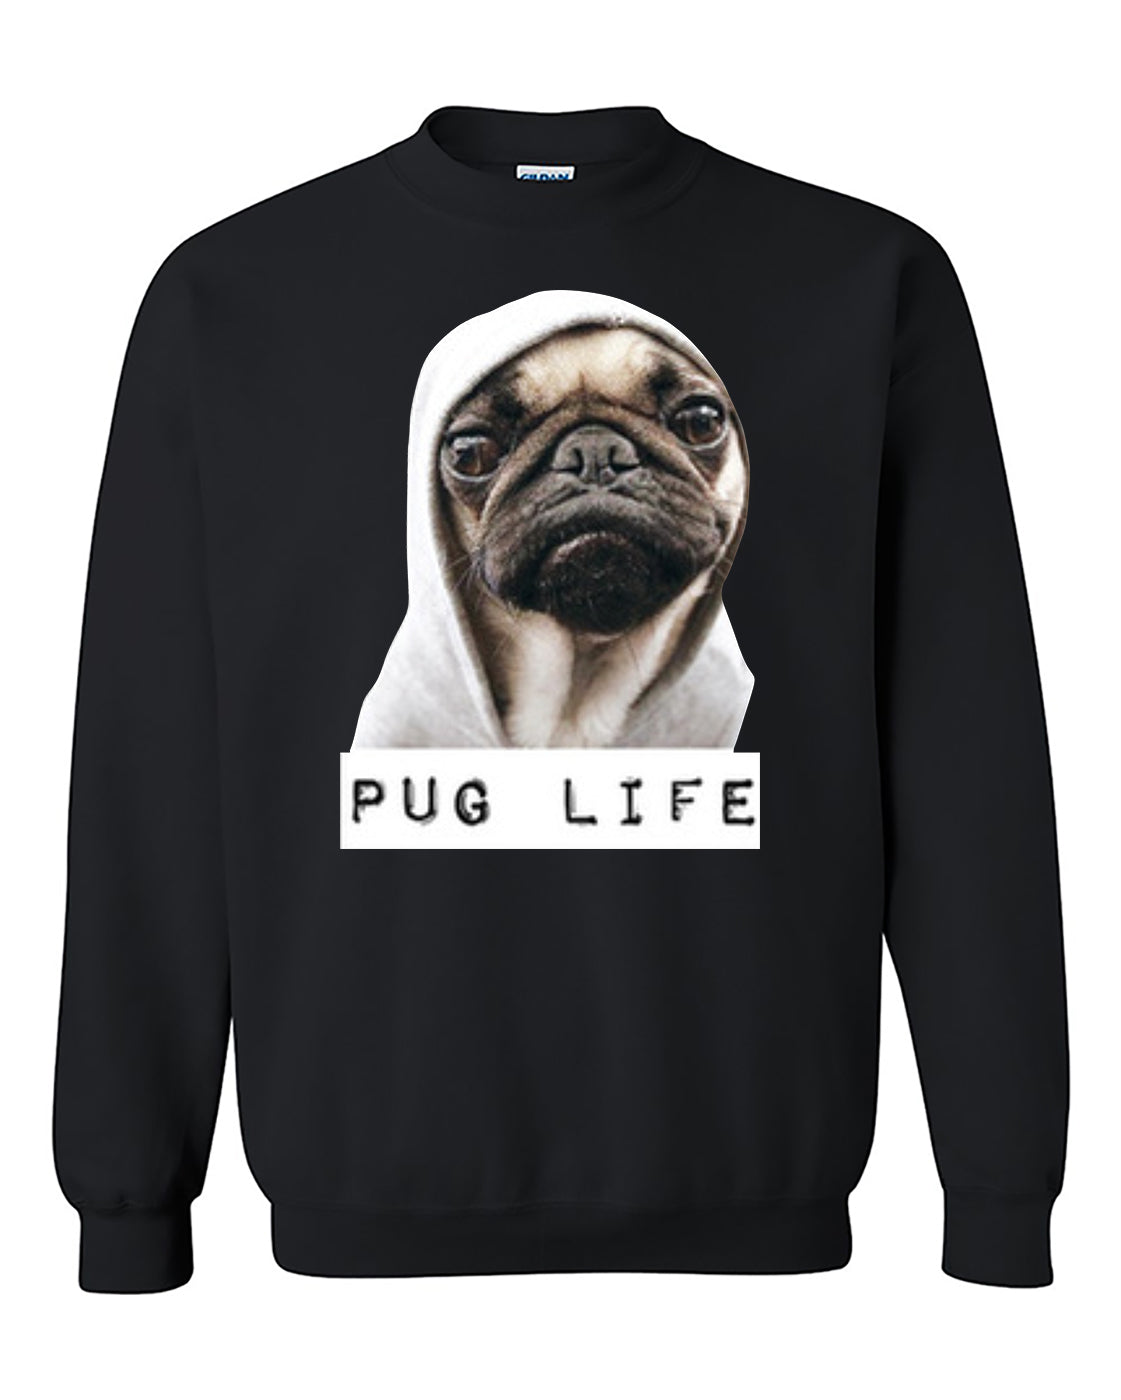 Pug Life Funny Puppy Crewneck Sweater